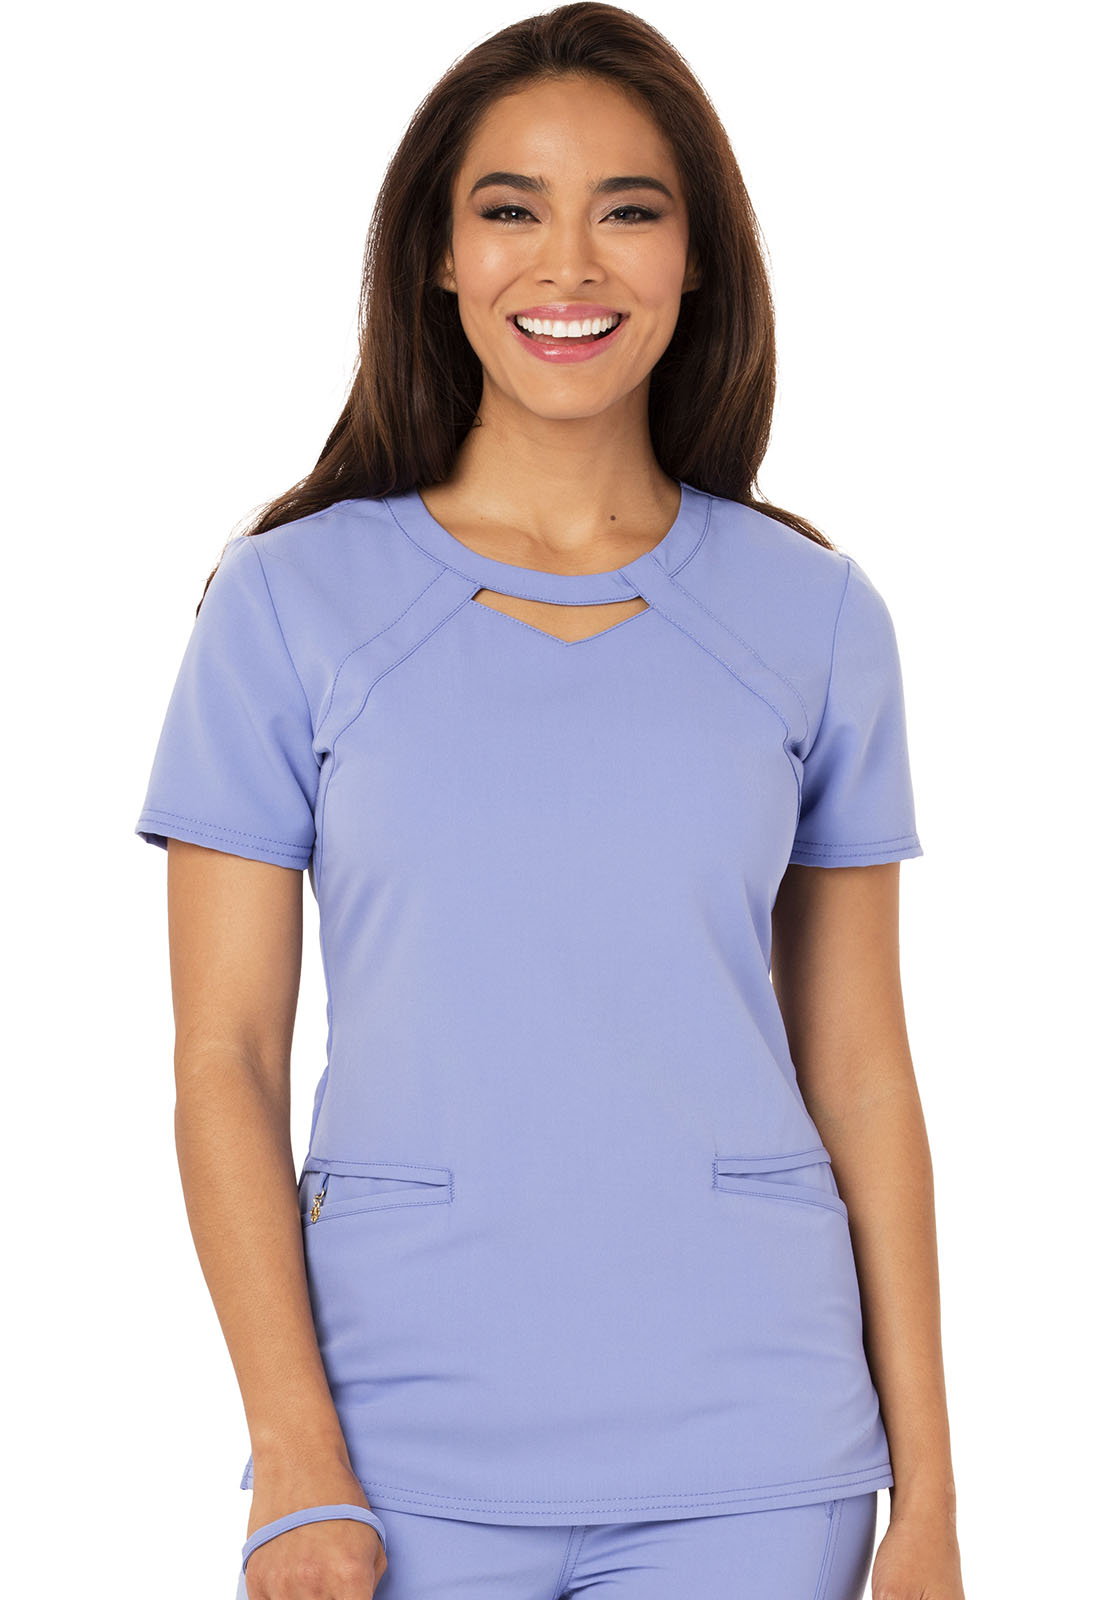 Cherokee Scrubs 4 Less - Always Free Shipping for Orders Over $25